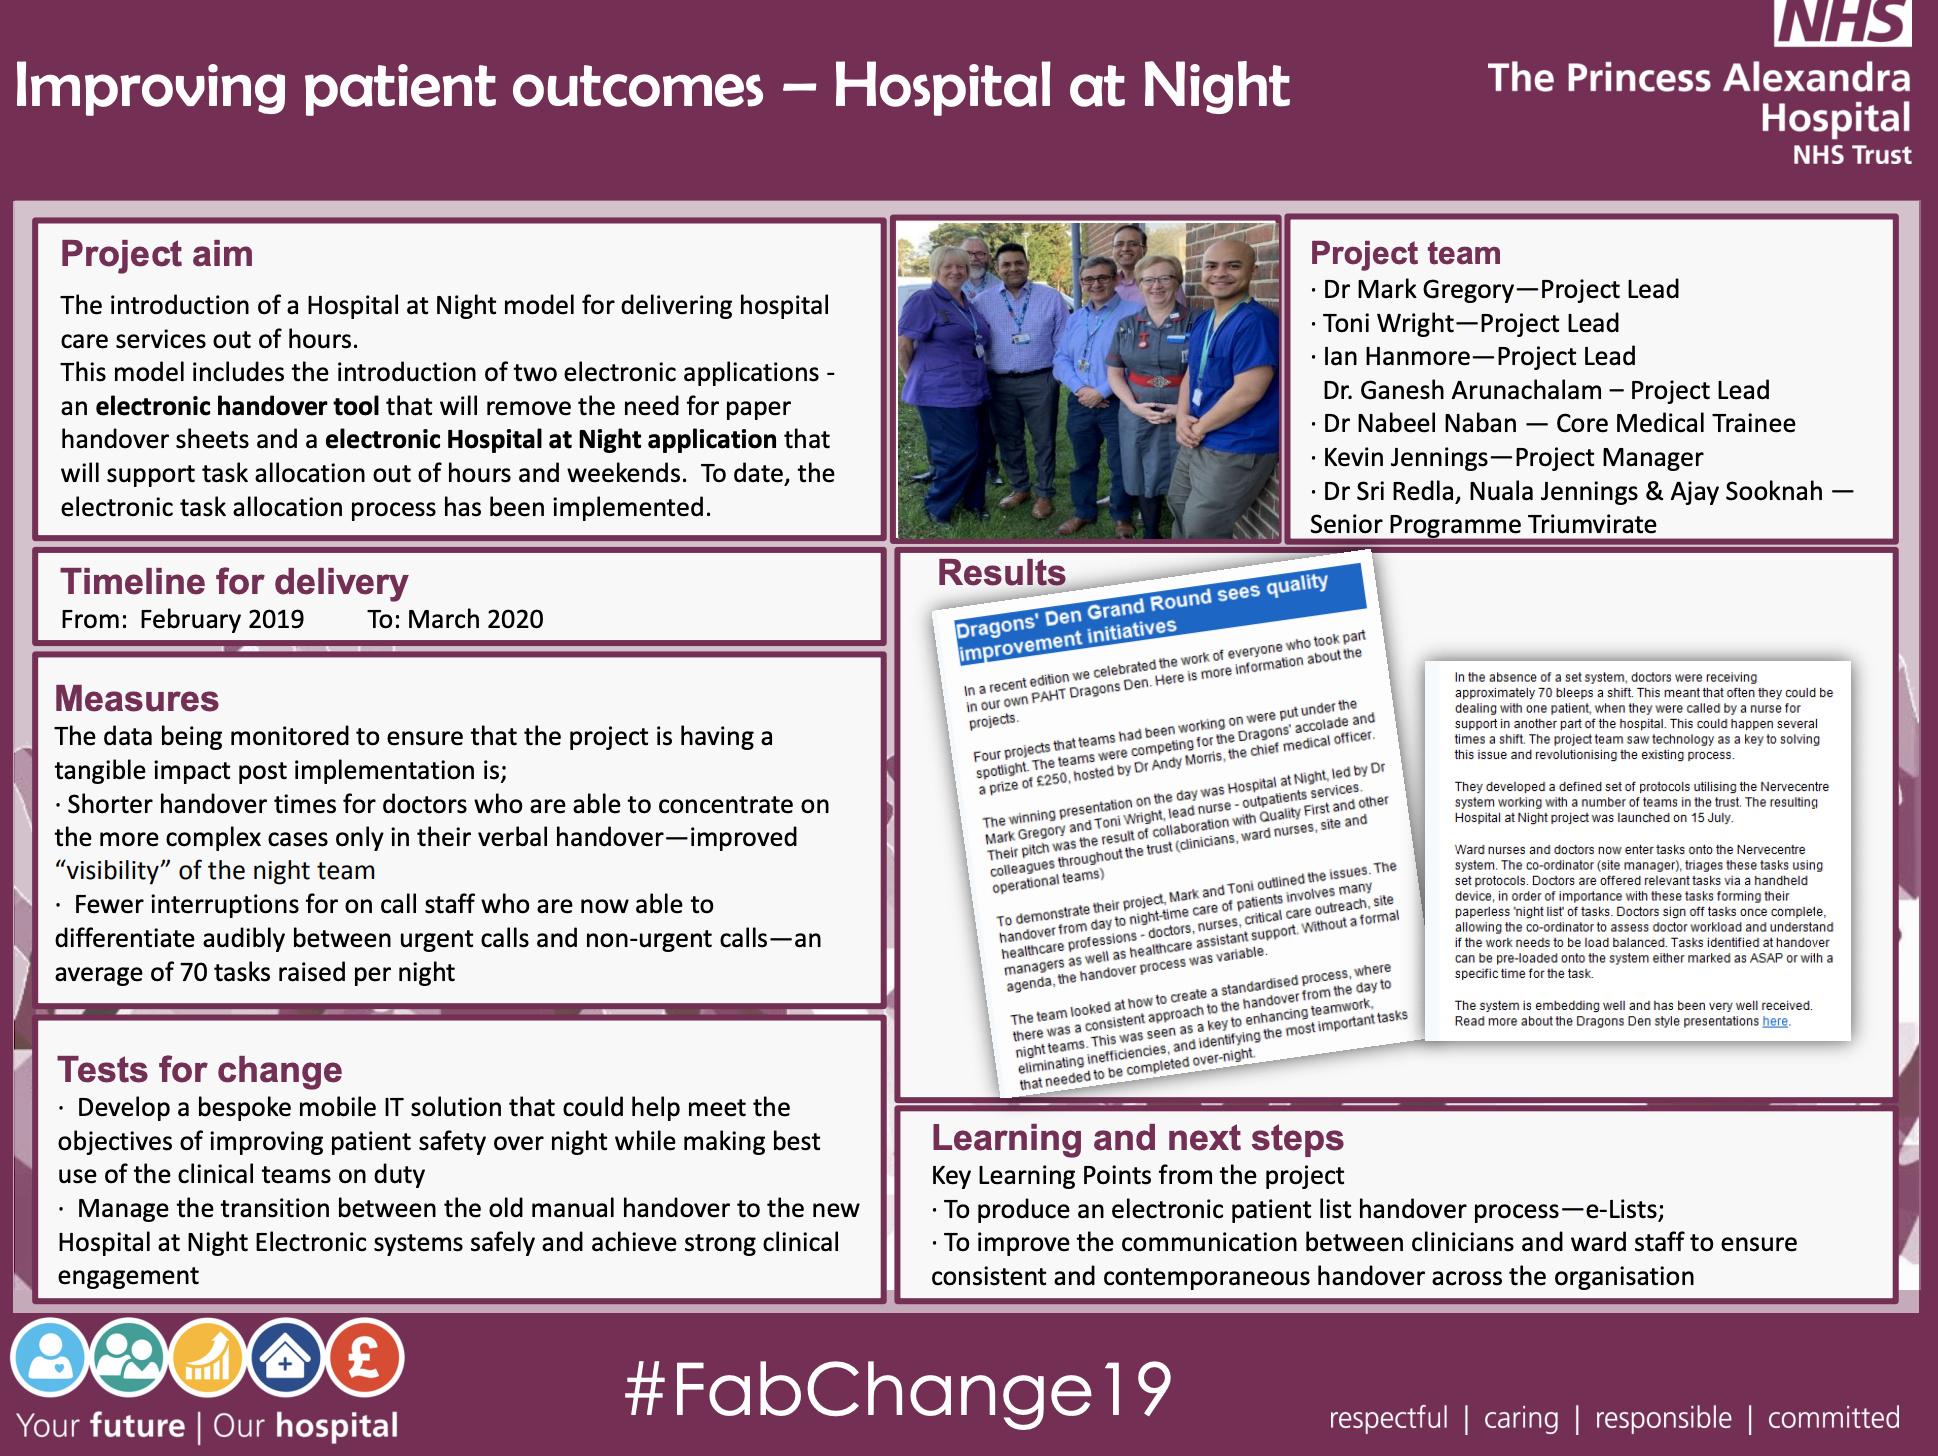 PAHT - Improving Patient Outcomes = Hospital At Night - @QualityFirstPAH featured image